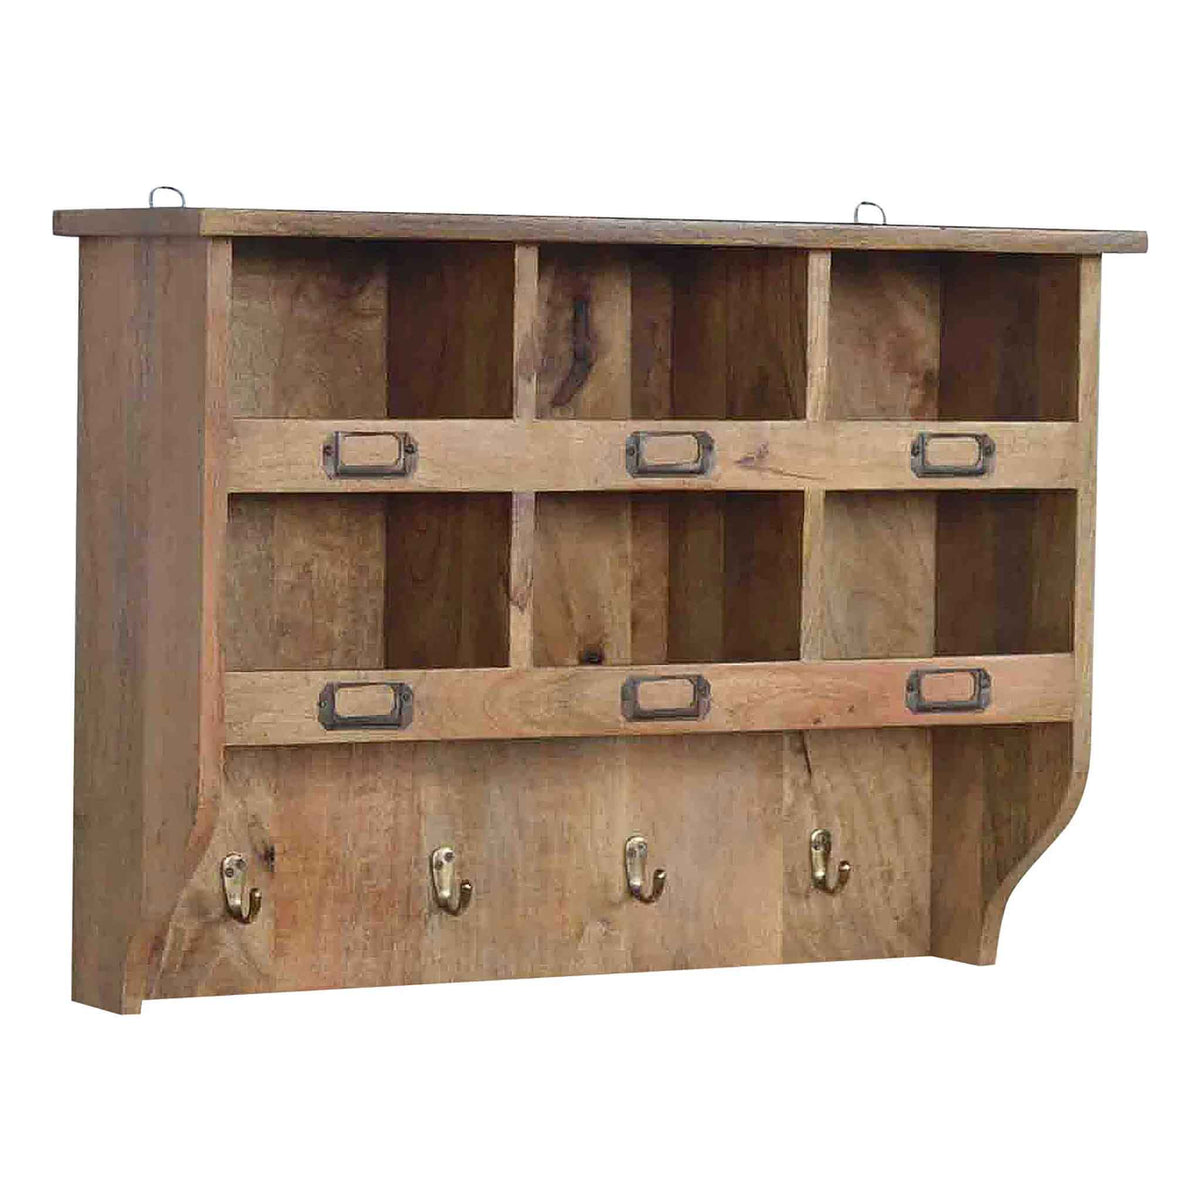 The Artisan Wooden Wall Mounted Storage Unit with Hooks from Roseland Furniutre